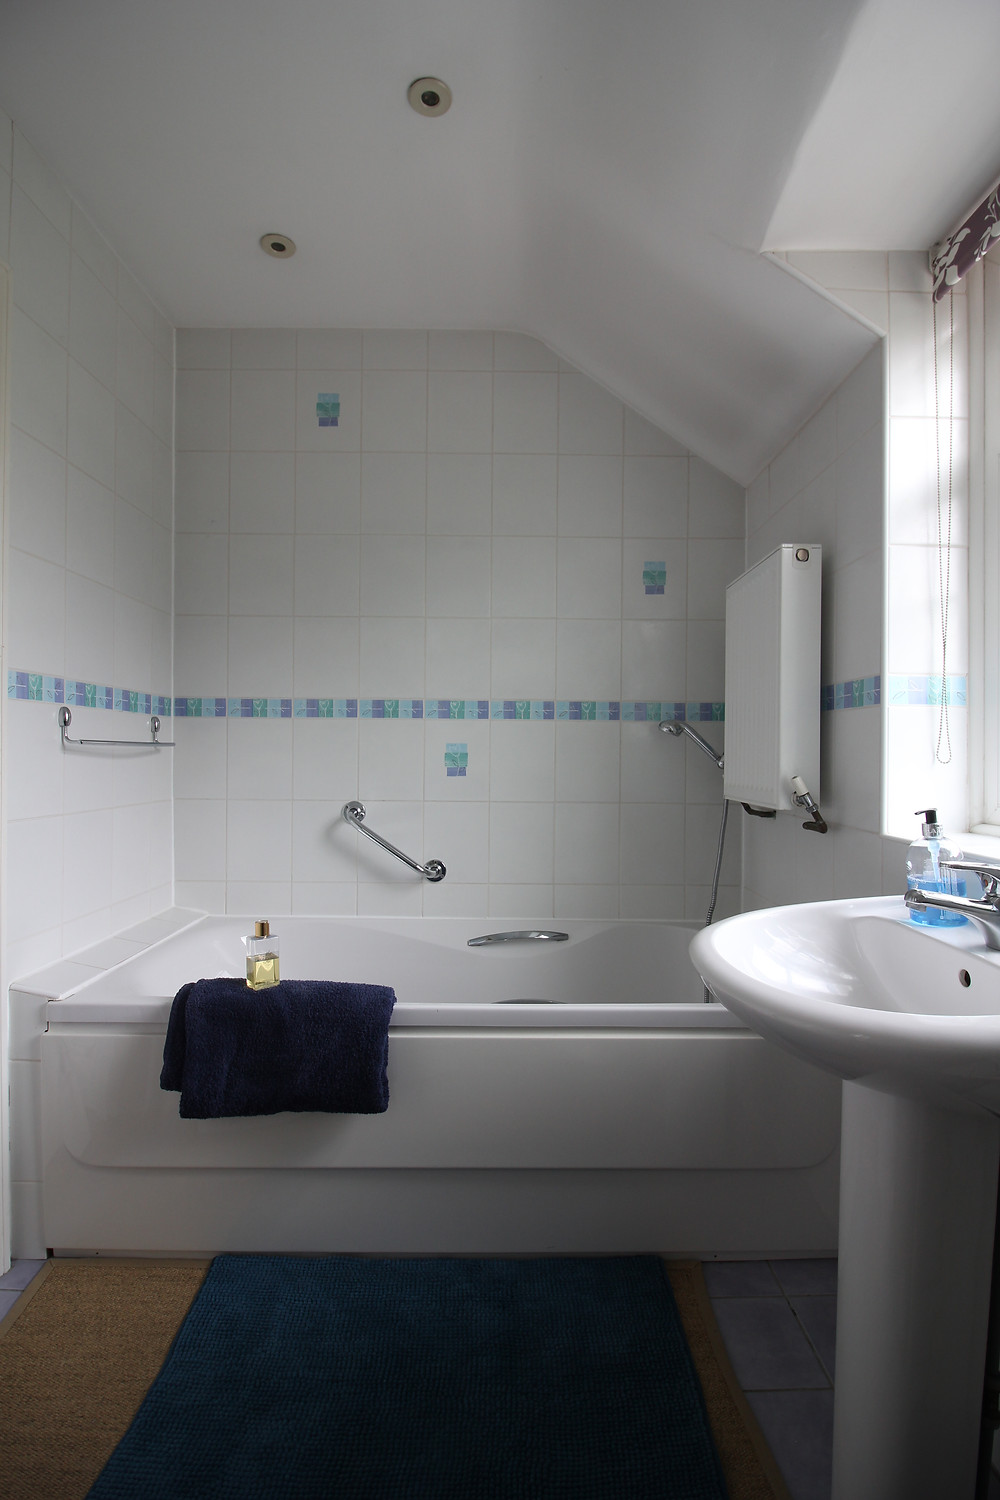 seasonsincolour bathroom makeover renovation remodel, a built in bathtub with white square tiles on the wall and a radiator on the wall.